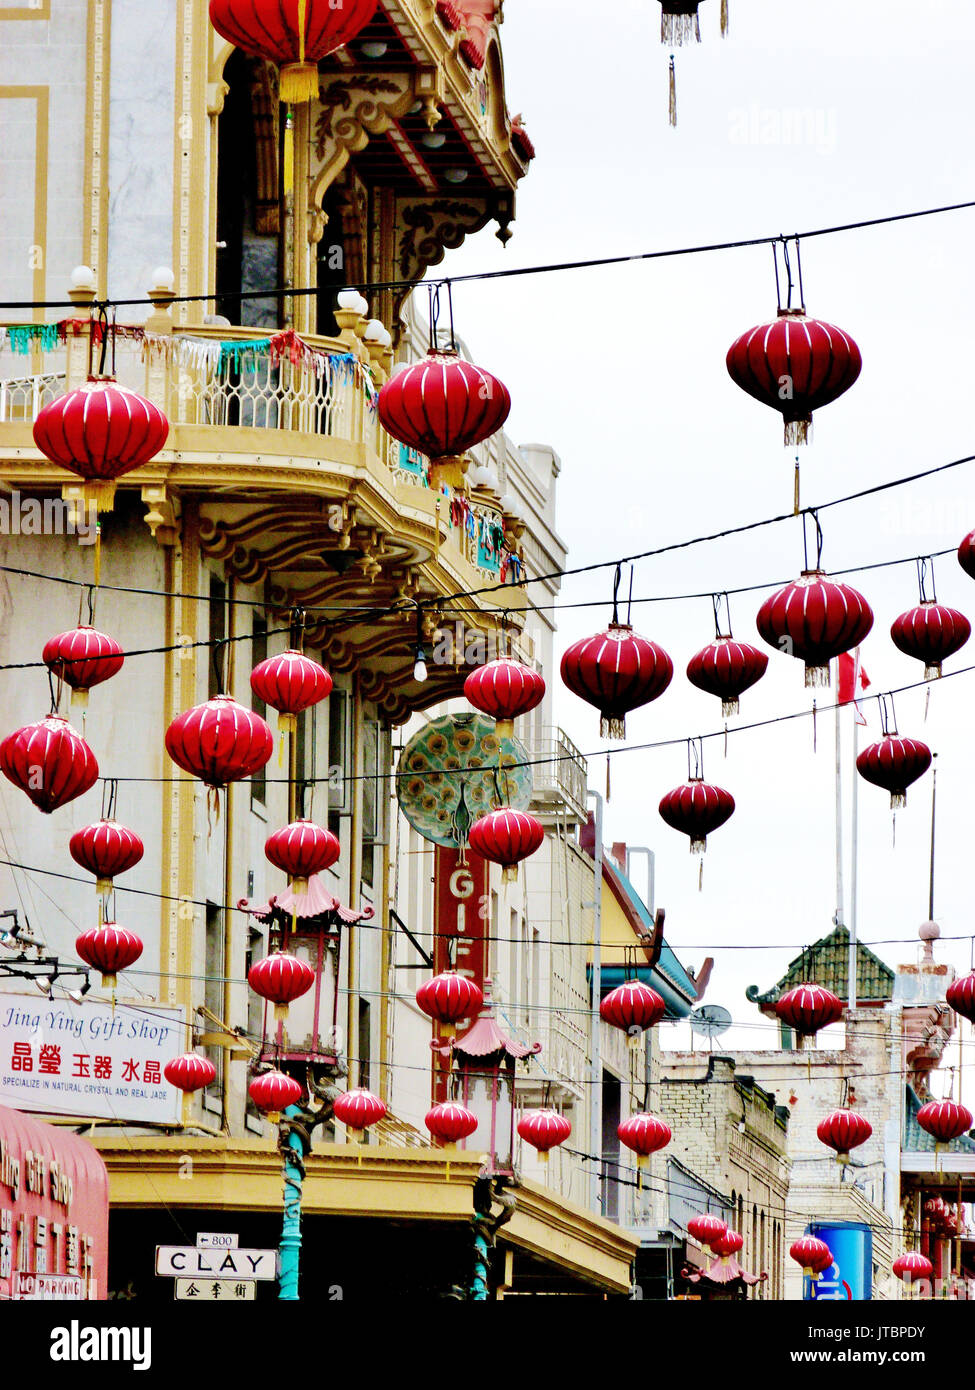 San Francisco China Town Foto Stock